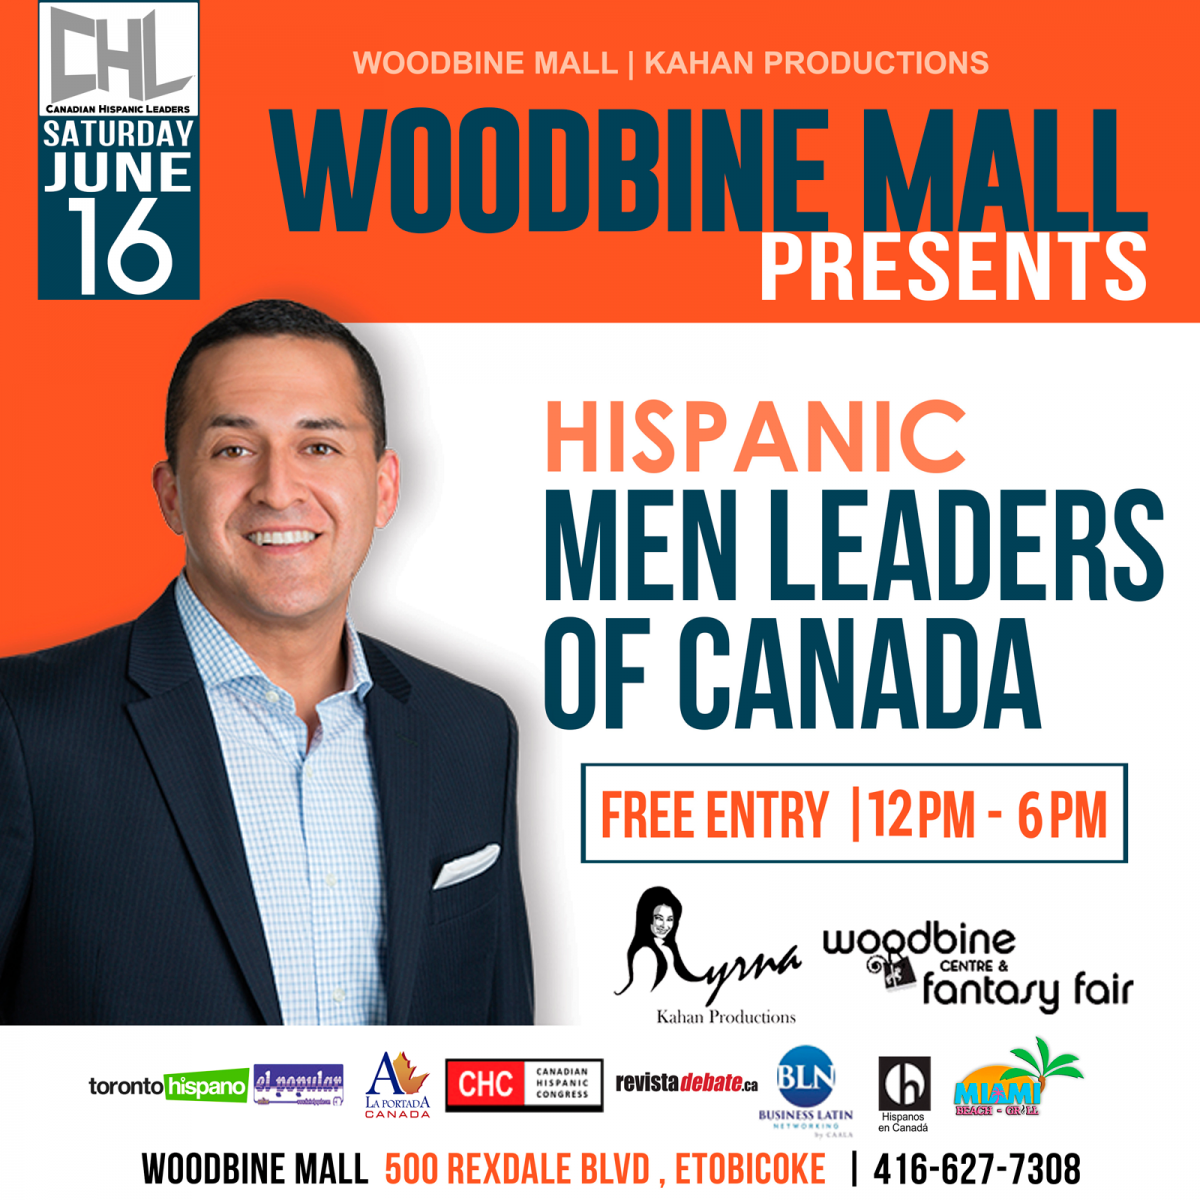 Hispanic Men Leaders of Canada